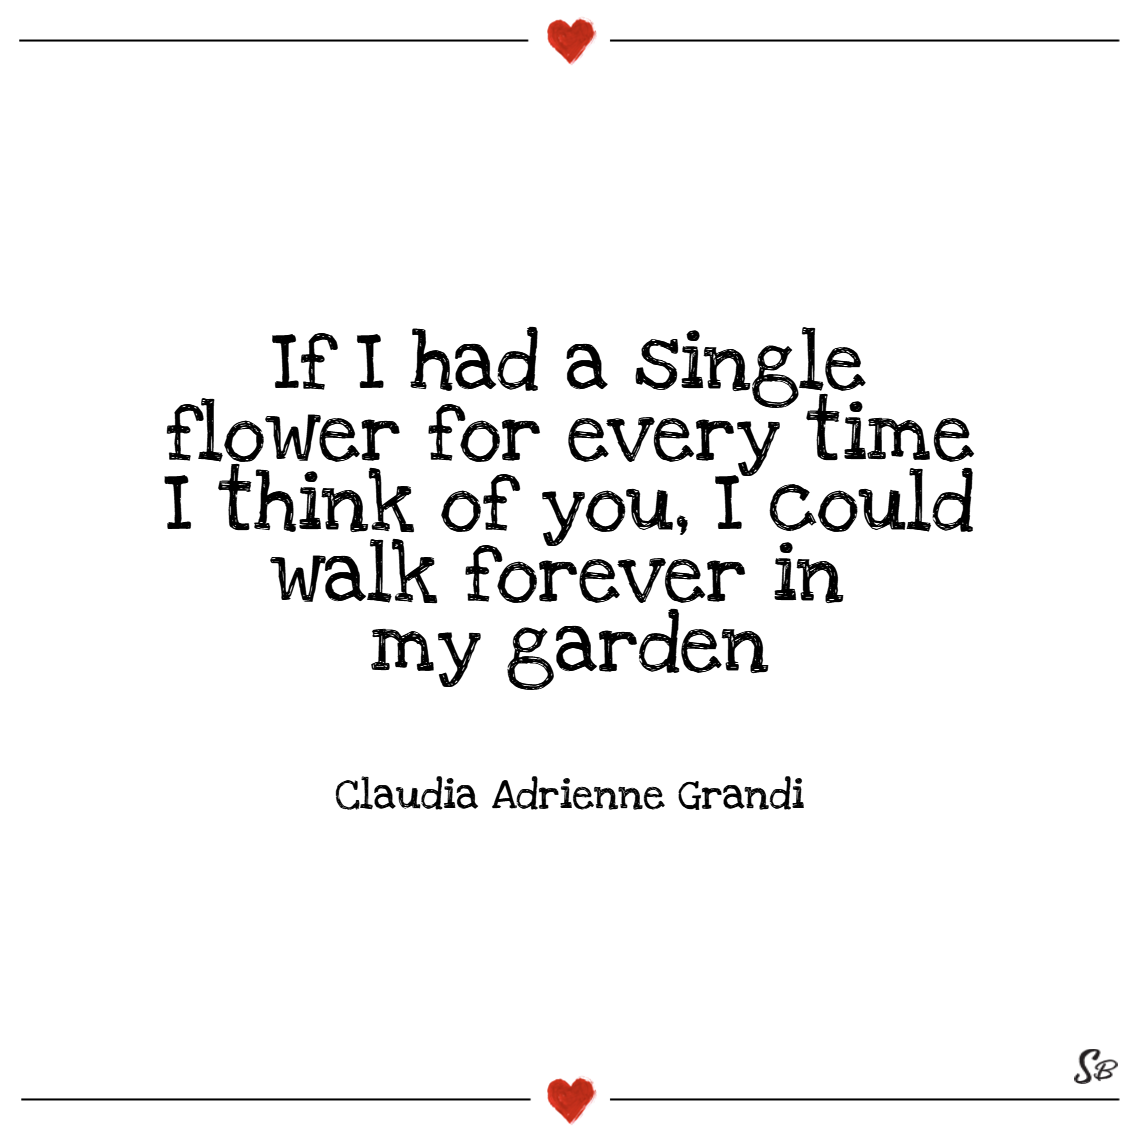 If i had a single flower for every time i think of you, i could walk forever in my garden. – claudia adrienne grandi thinking of you quotes